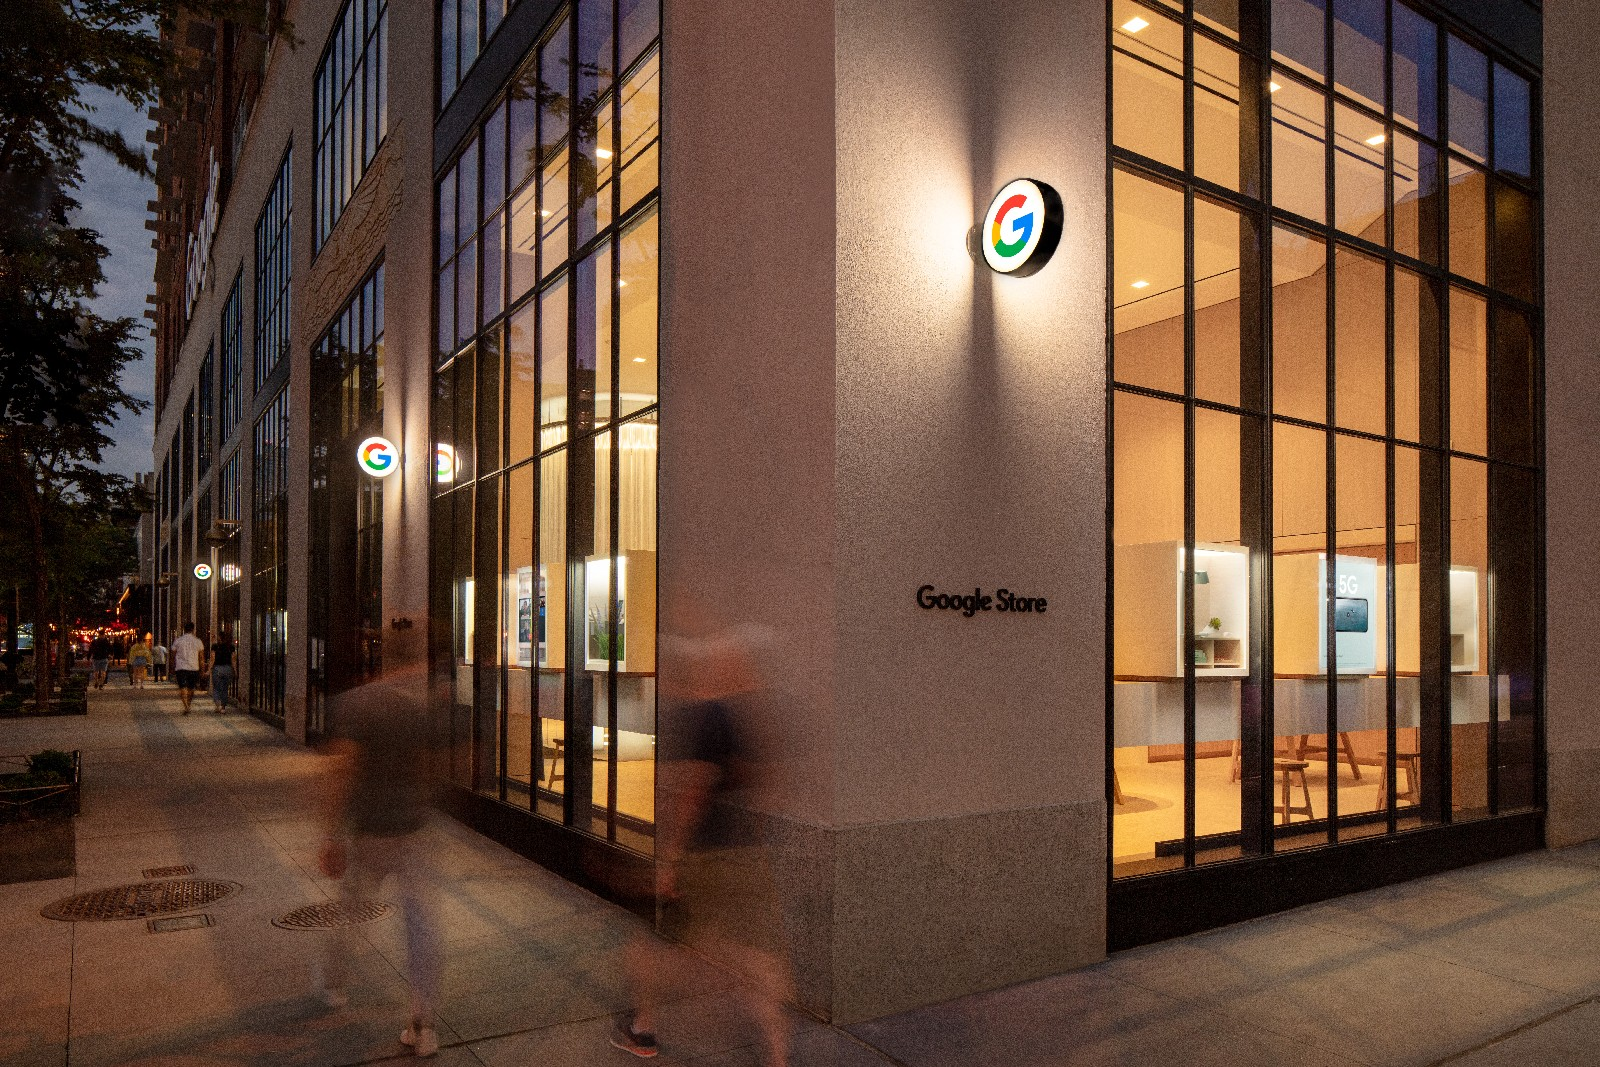 <p>Google Store Chelsea. Exterior facade at night with blurs of two people walking by.</p>